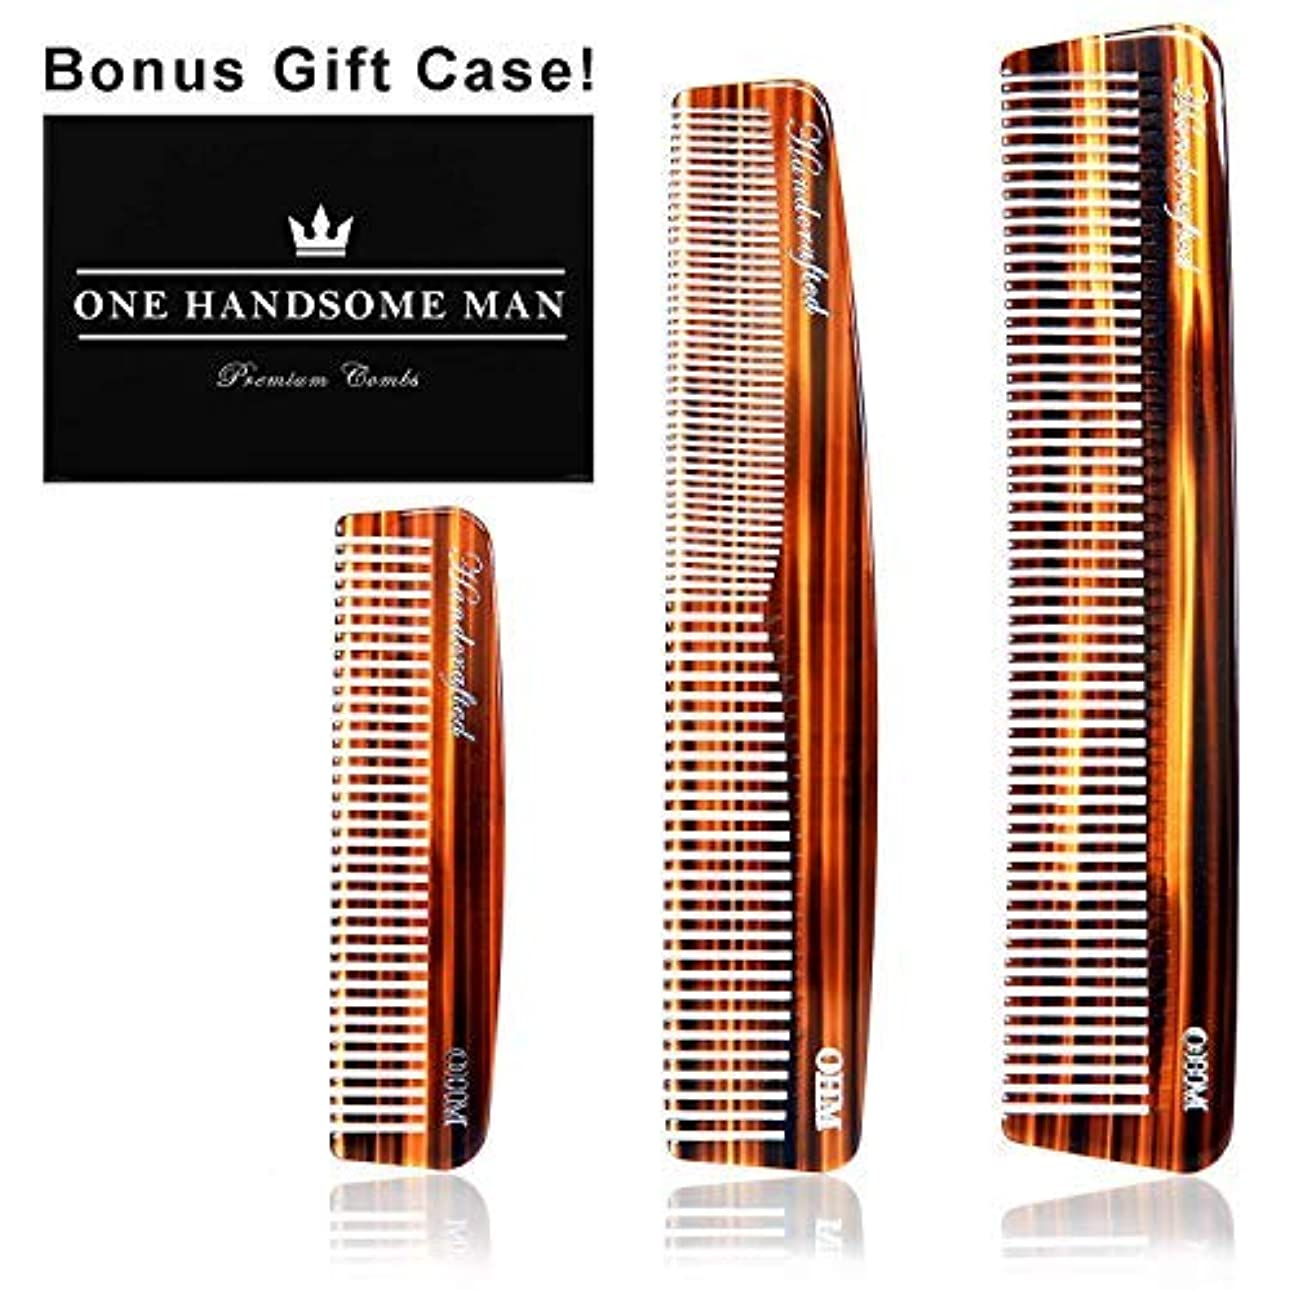 3 Set Mens Comb by One Handsome Man - Anti-Static Hair Comb, Beard Comb, and Mustache Combs For Men with Leather...